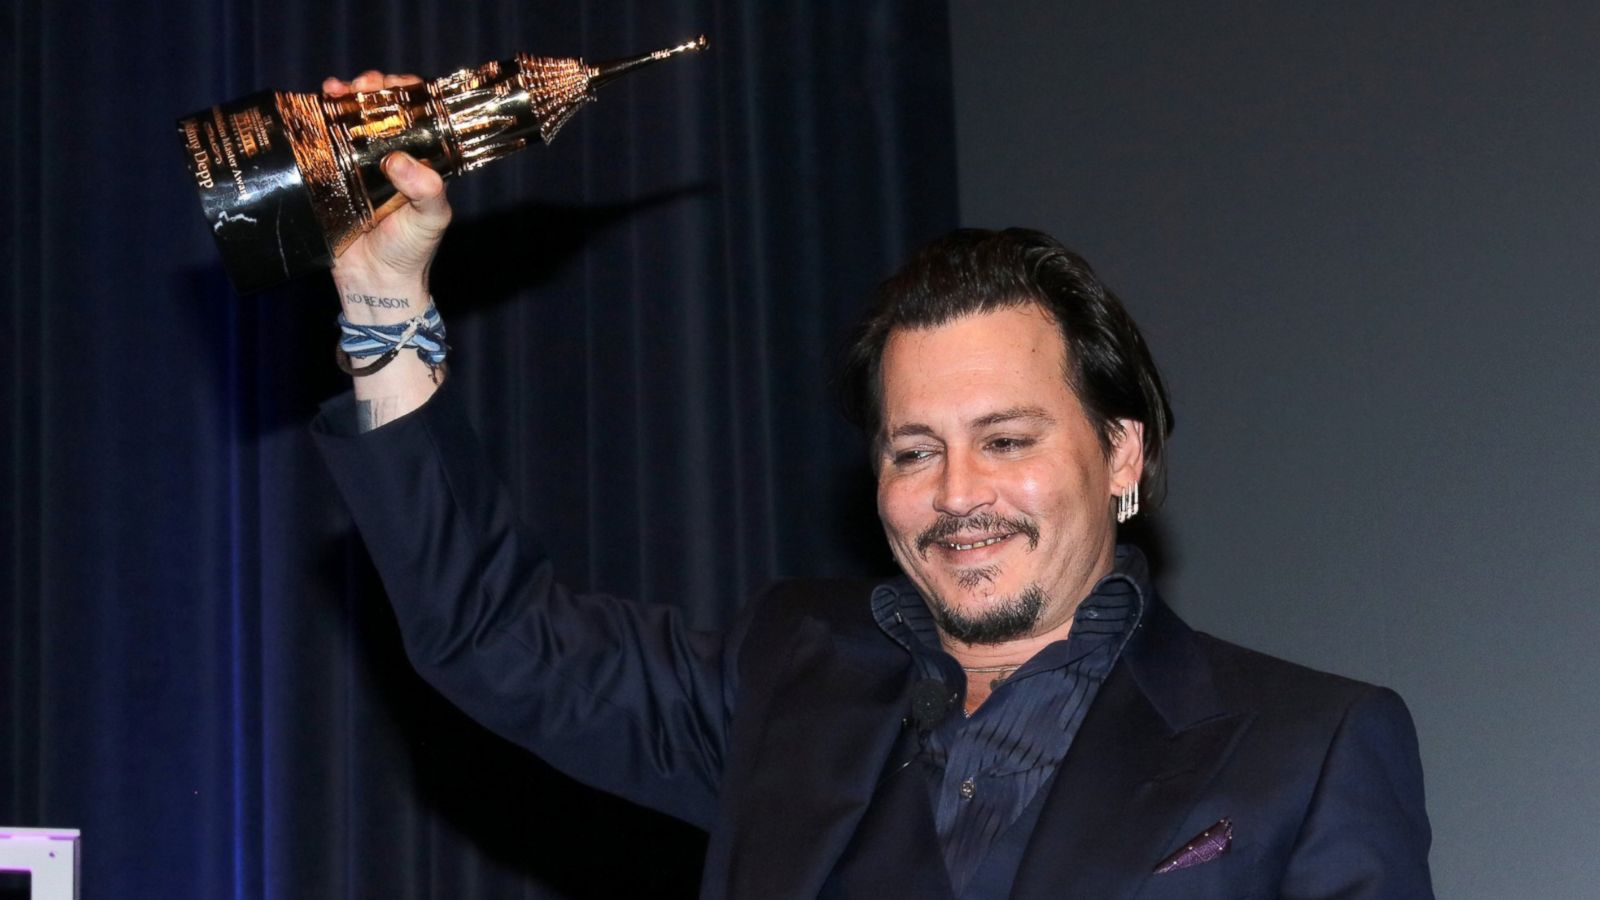 DiCaprio beat Depp due to the promiscuity of the latter 02.08.2011 12